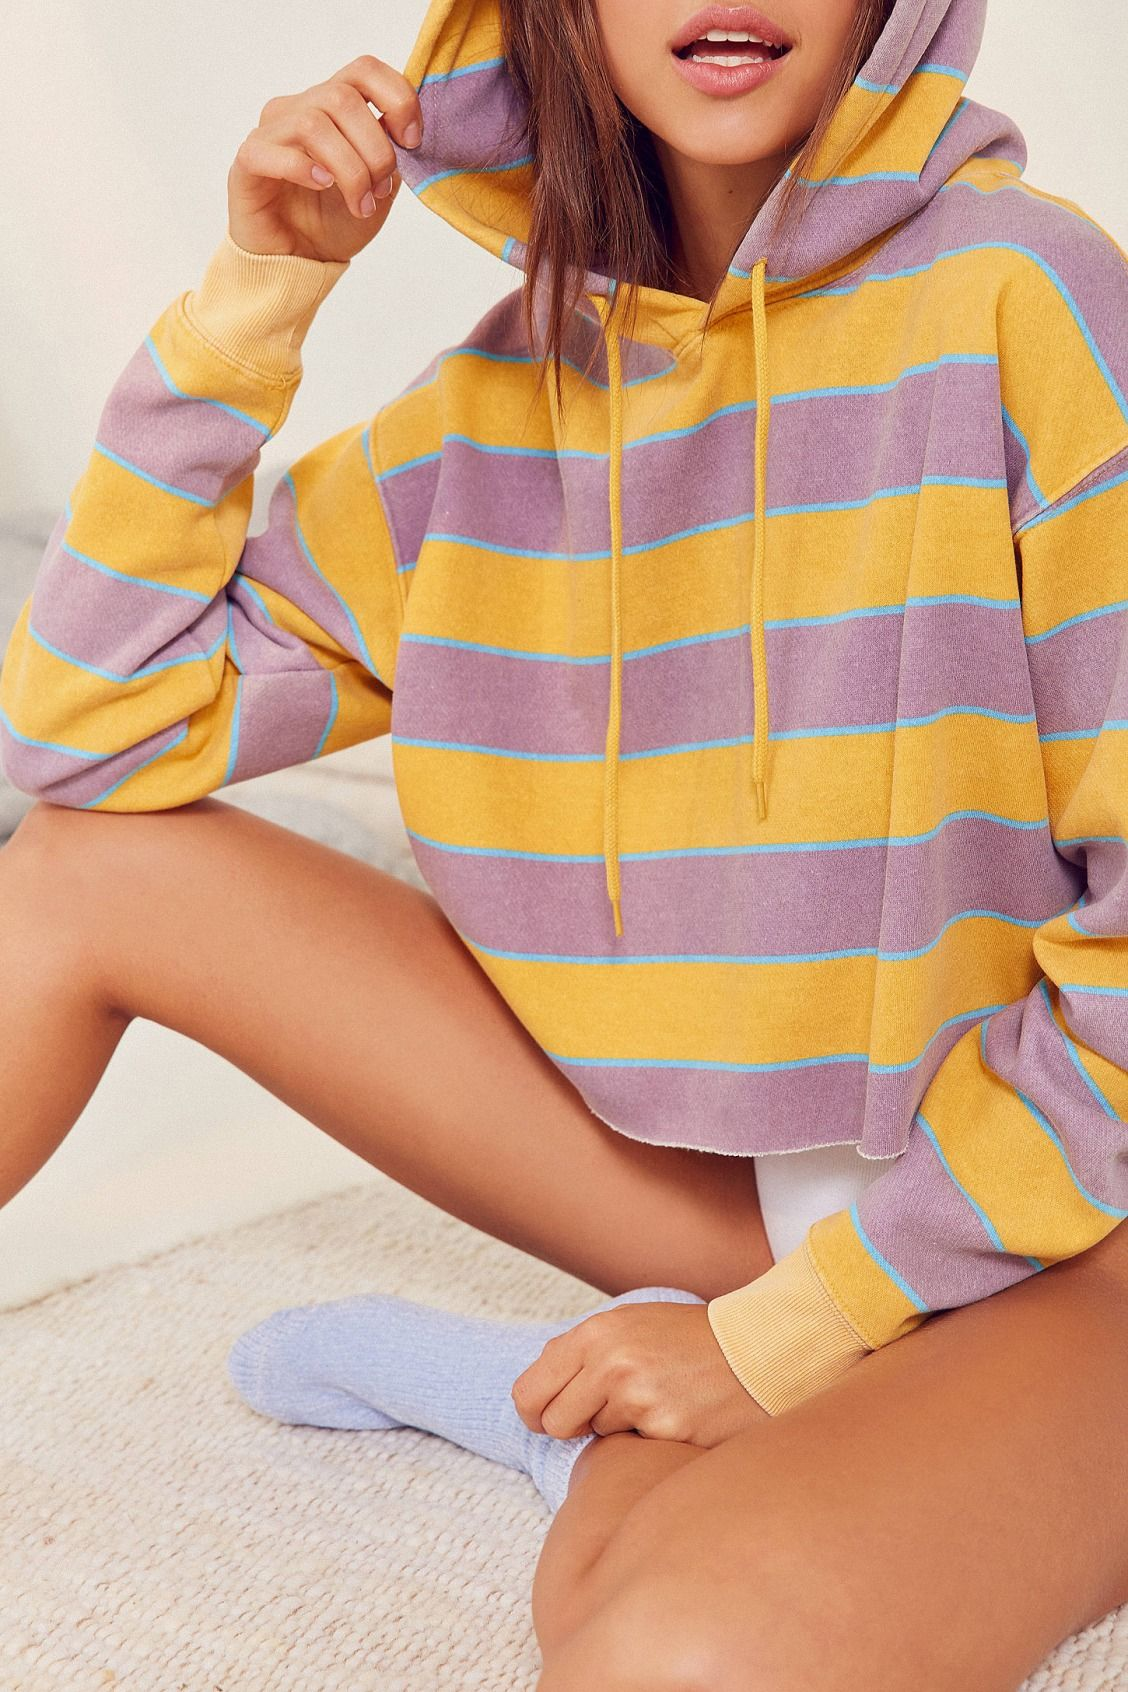 782845f08283da Slide View  1  Out From Under Striped Cropped Hoodie Sweatshirt